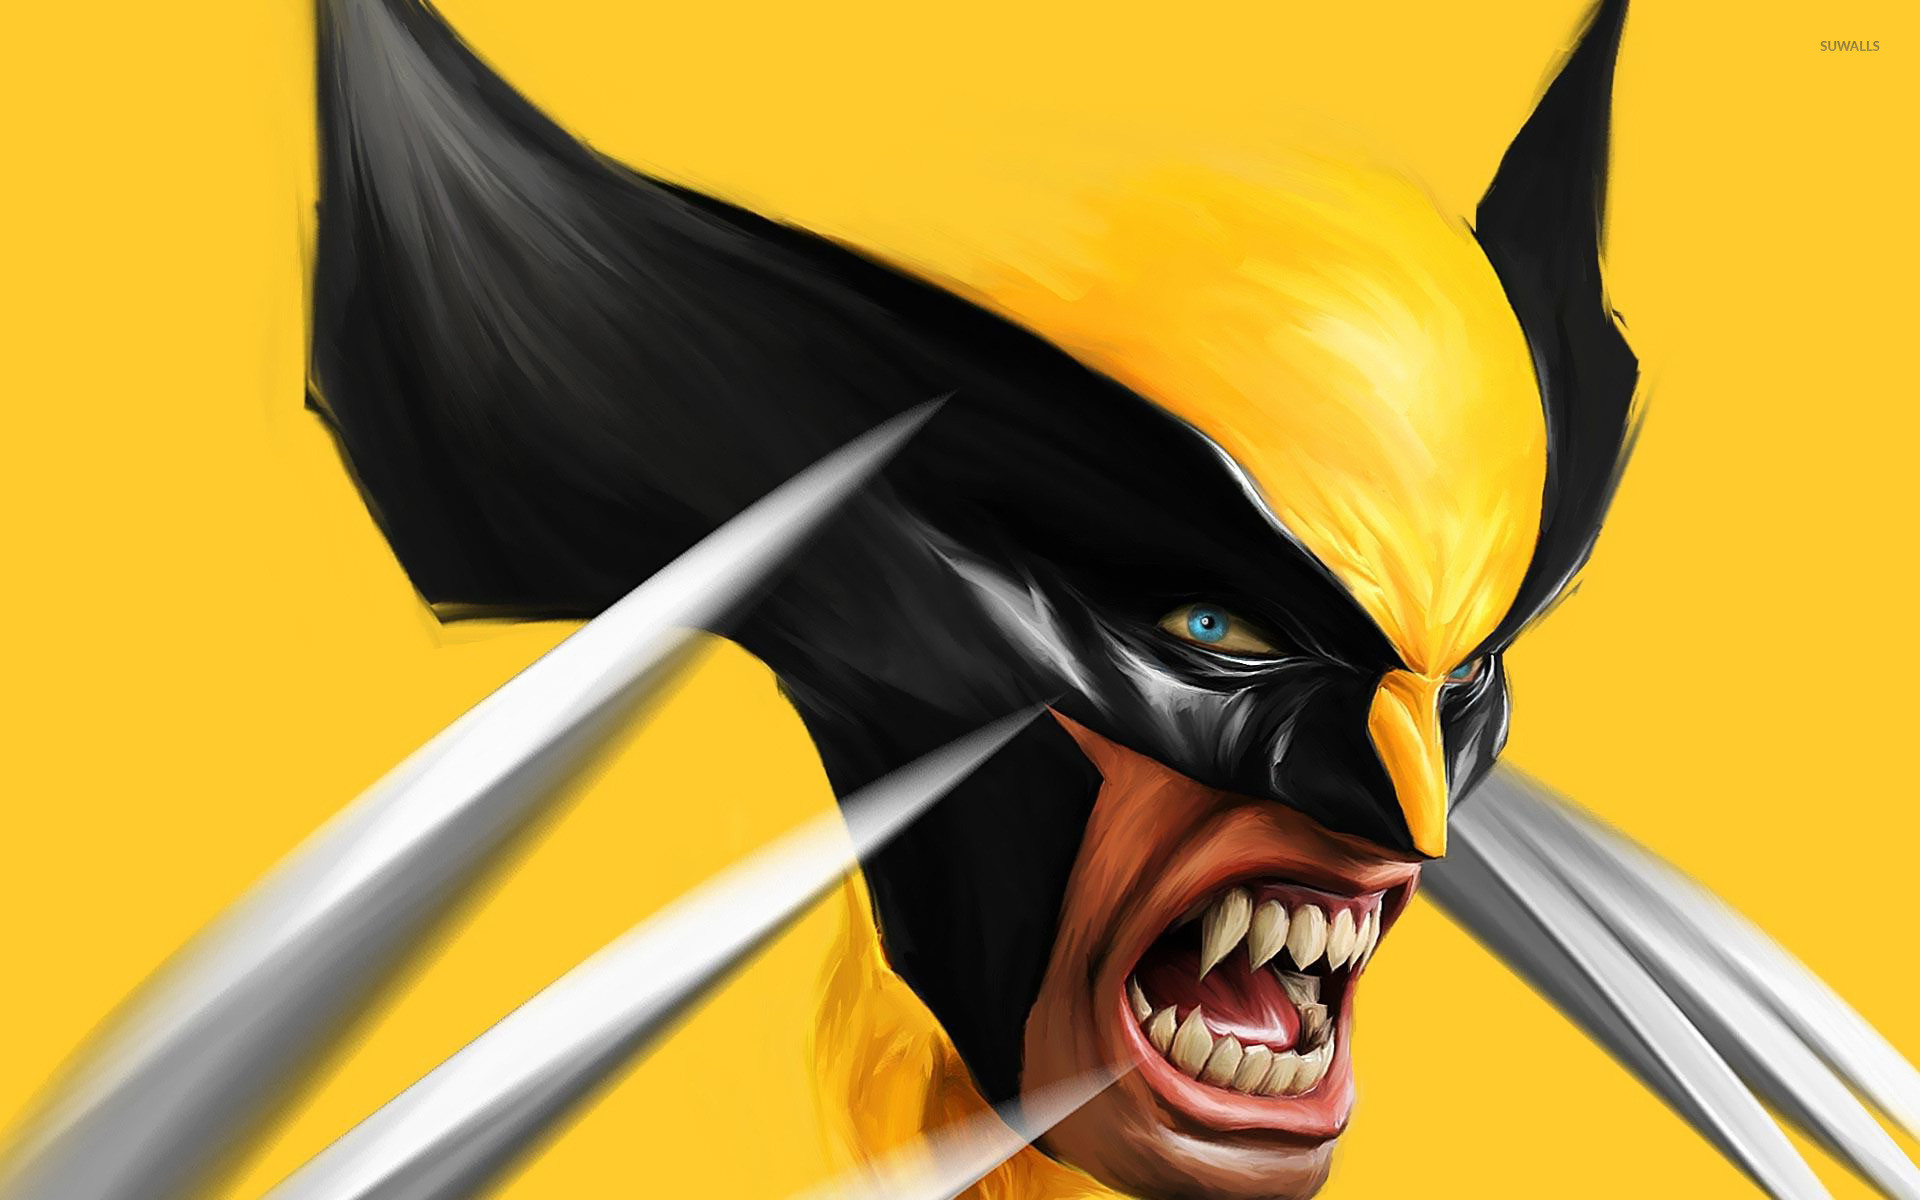 1920x1200 Wolverine wallpaper - Comic wallpapers - #16112